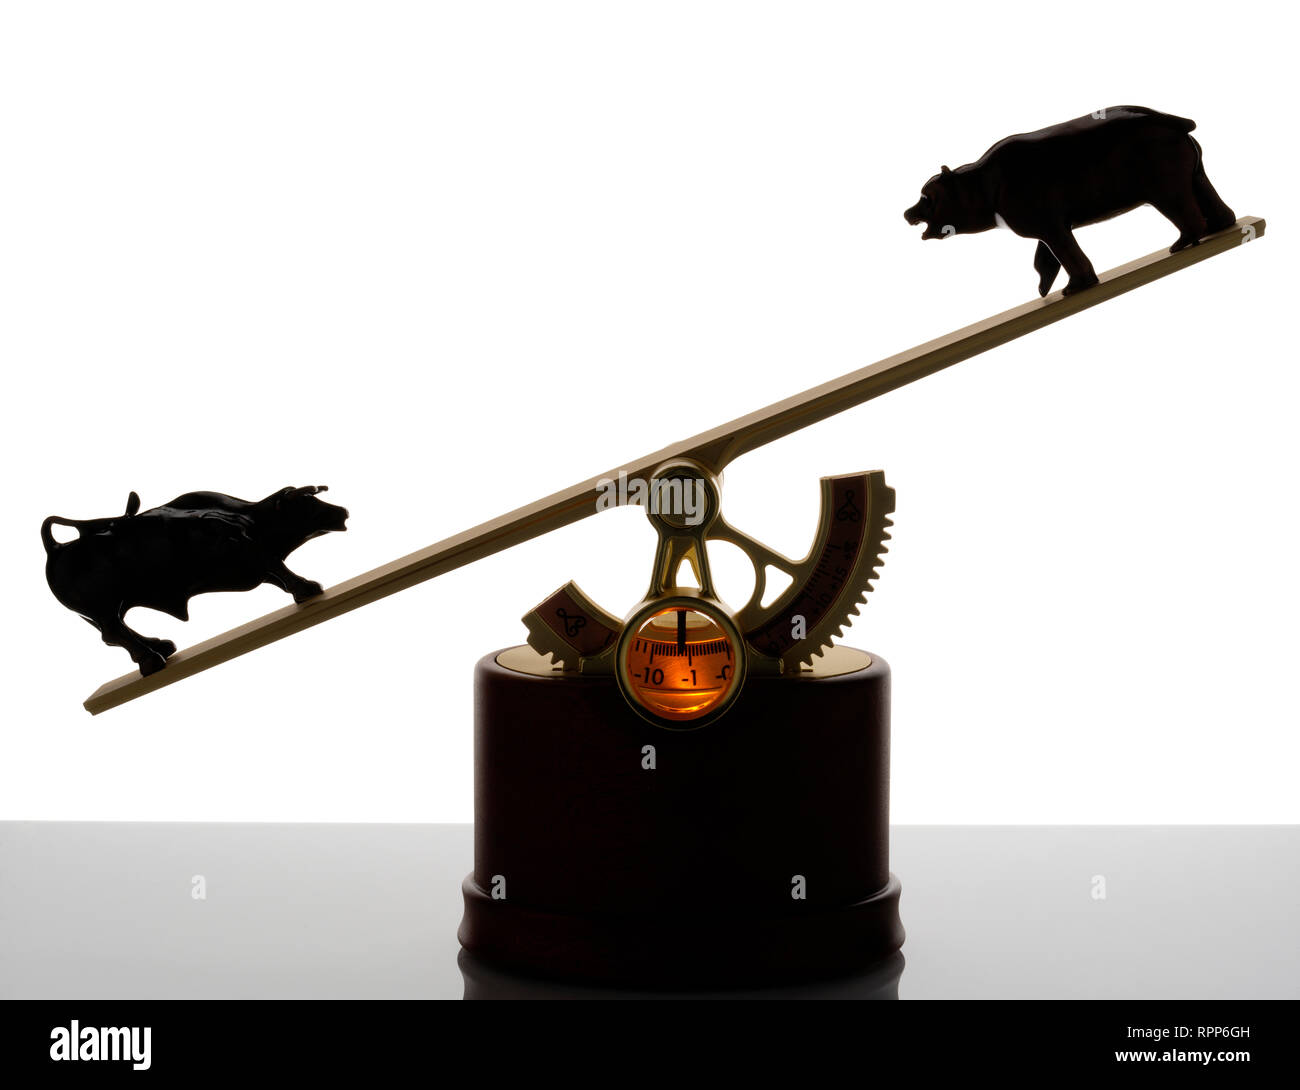 The Market, executive toy (!) that displays the balance of the stockmarket. Bull and bear at opposing ends of a see-saw. Stock Photo